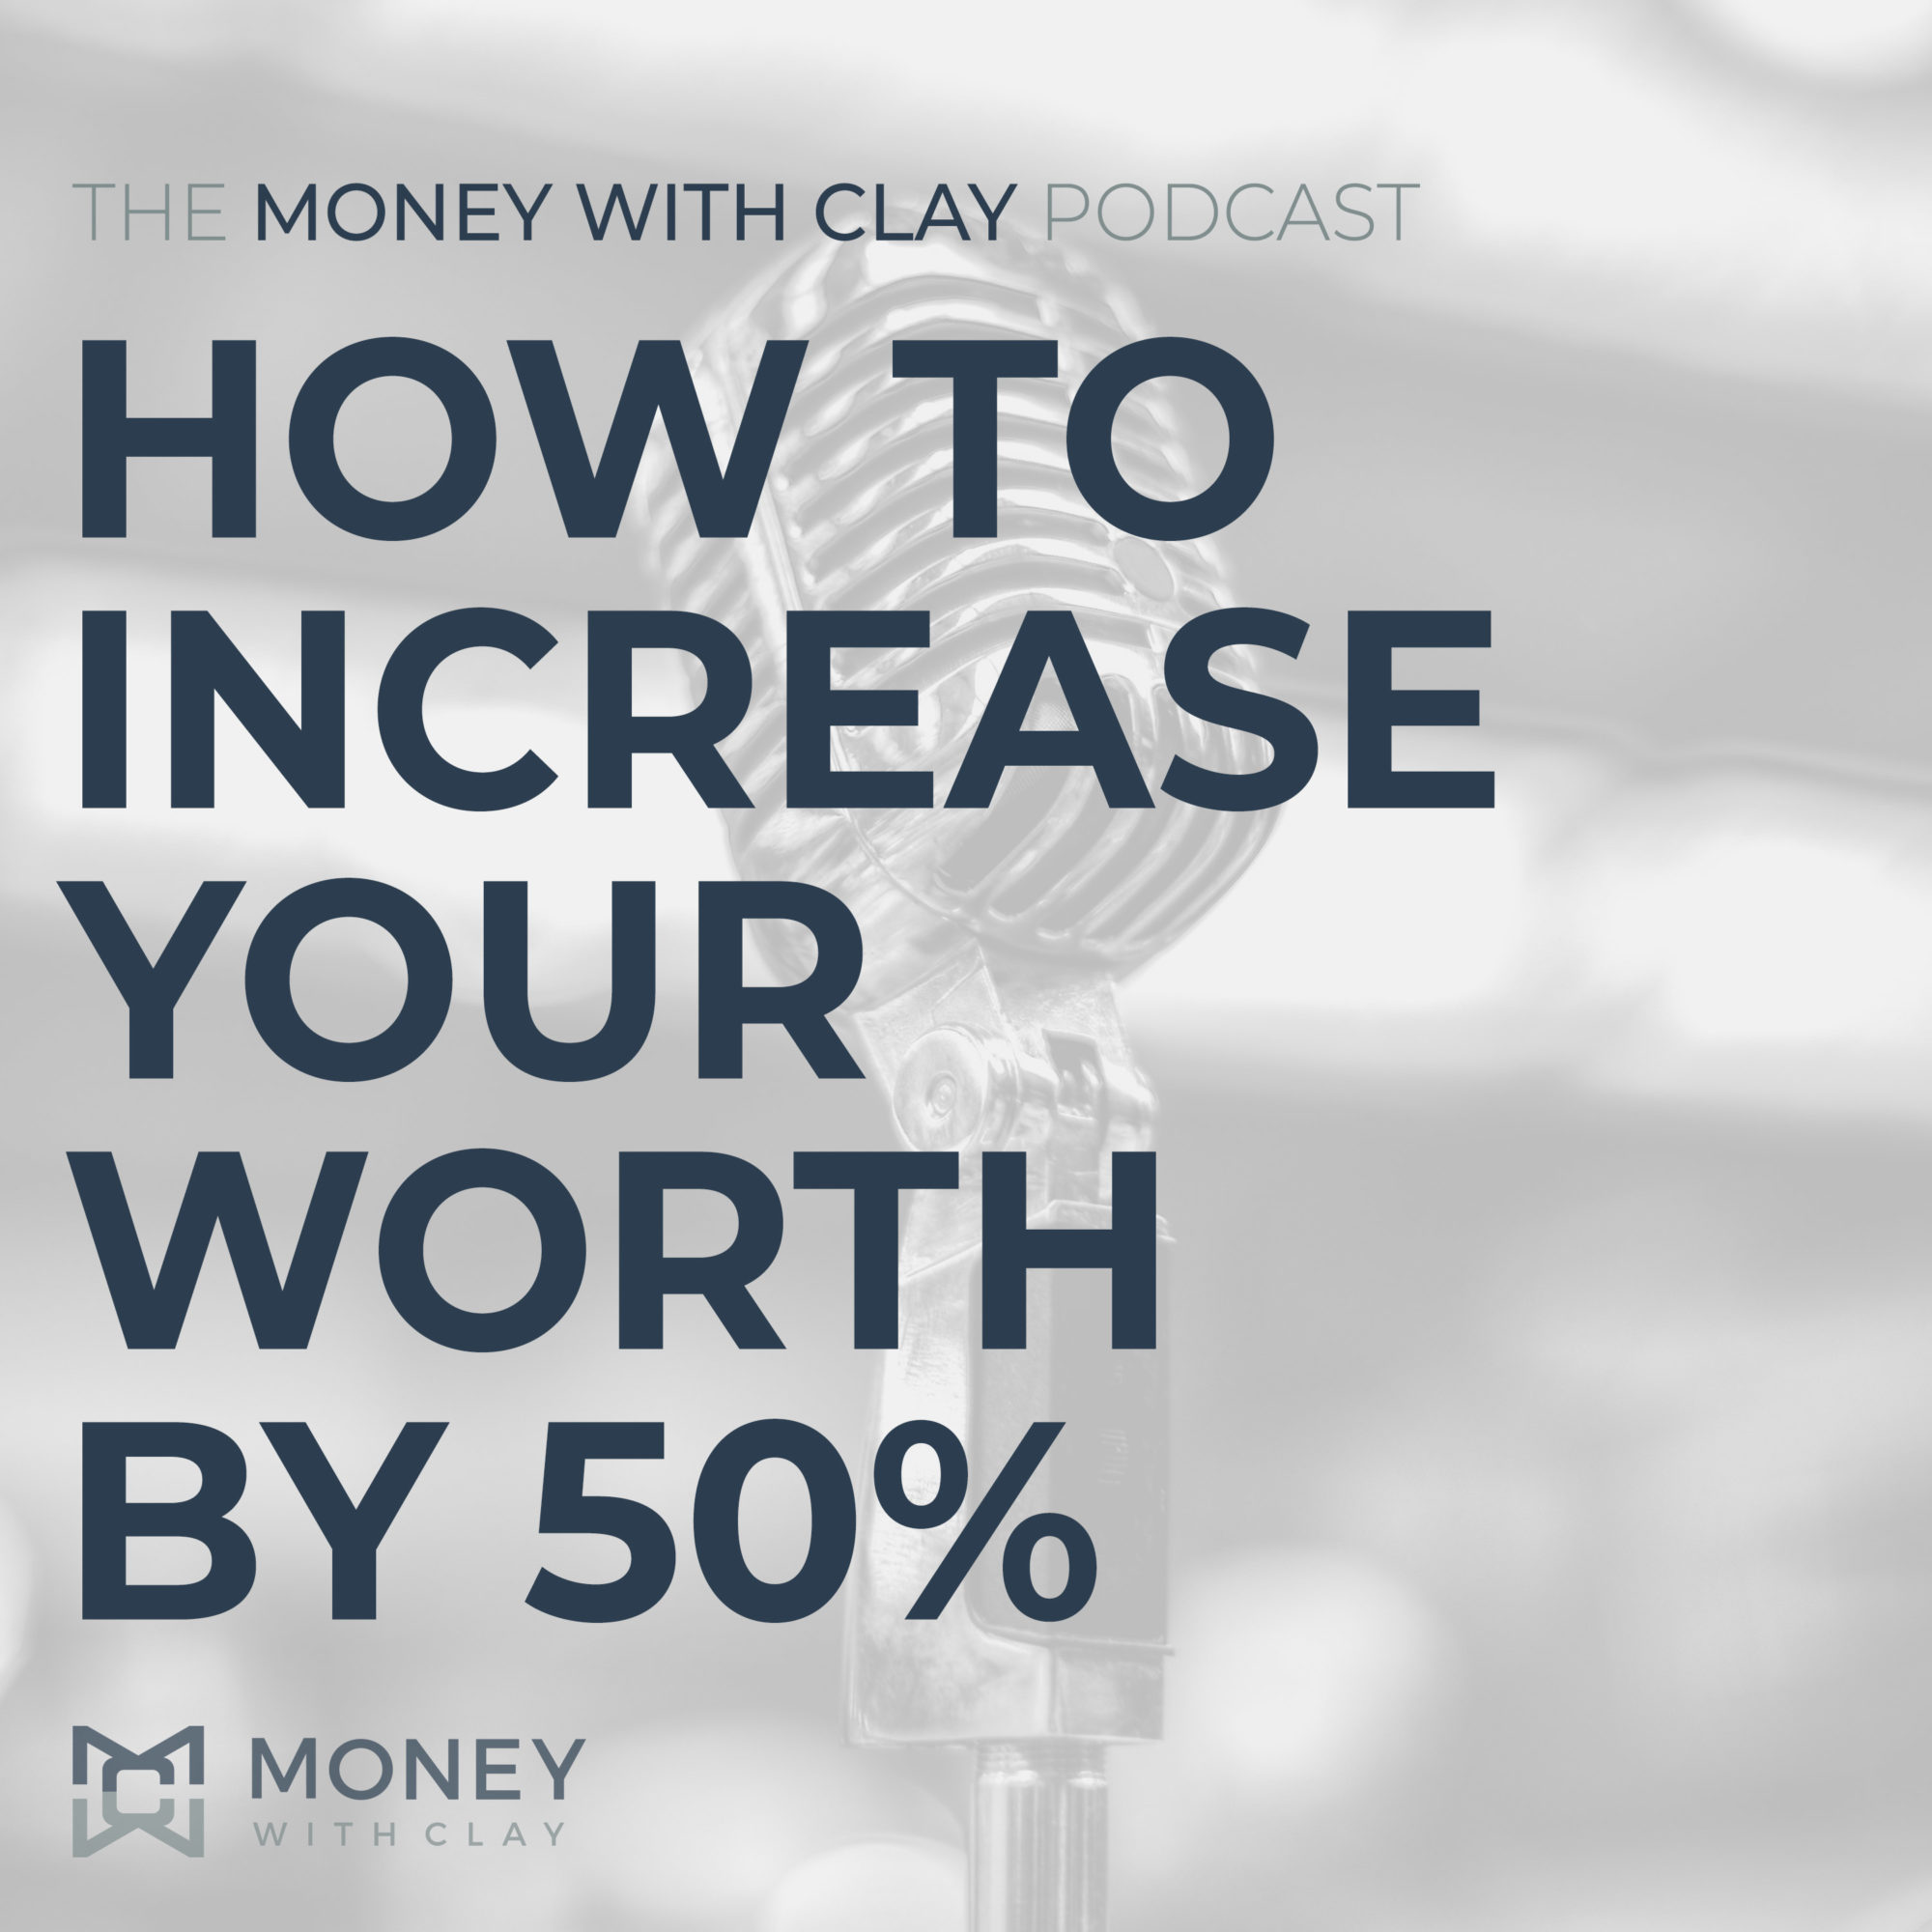 #093 - How To Increase Your Worth by 50%